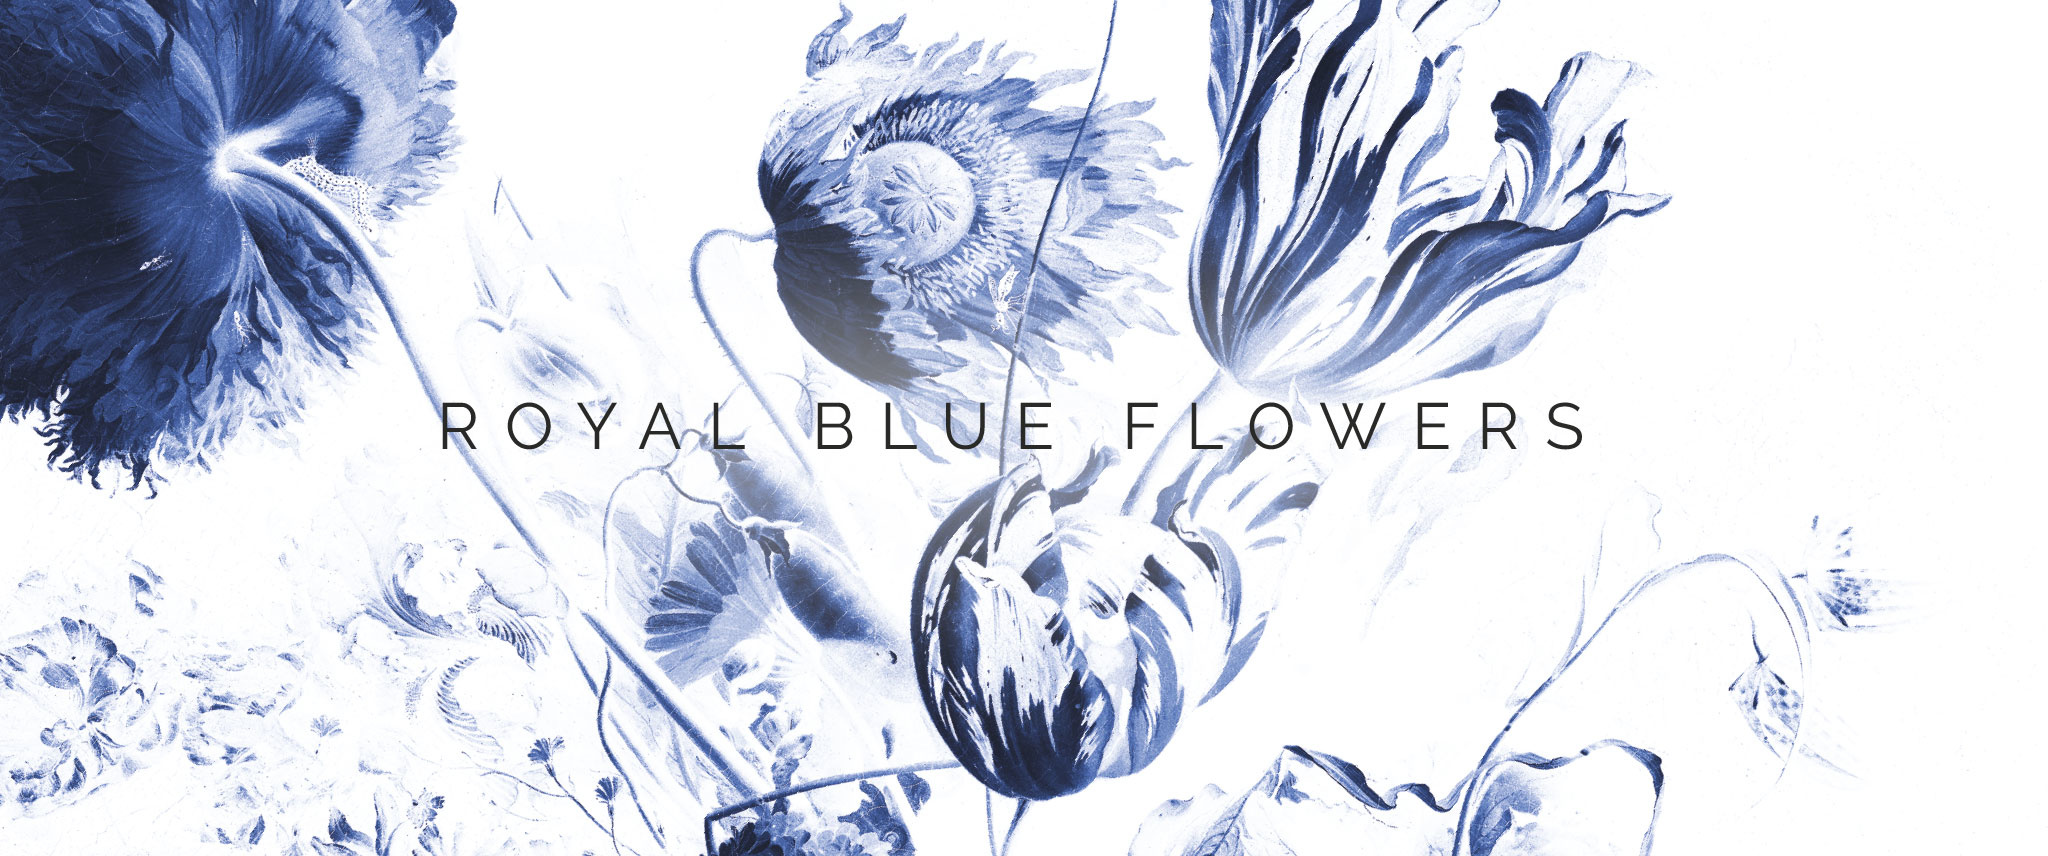 Behang Royal Blue Flowers